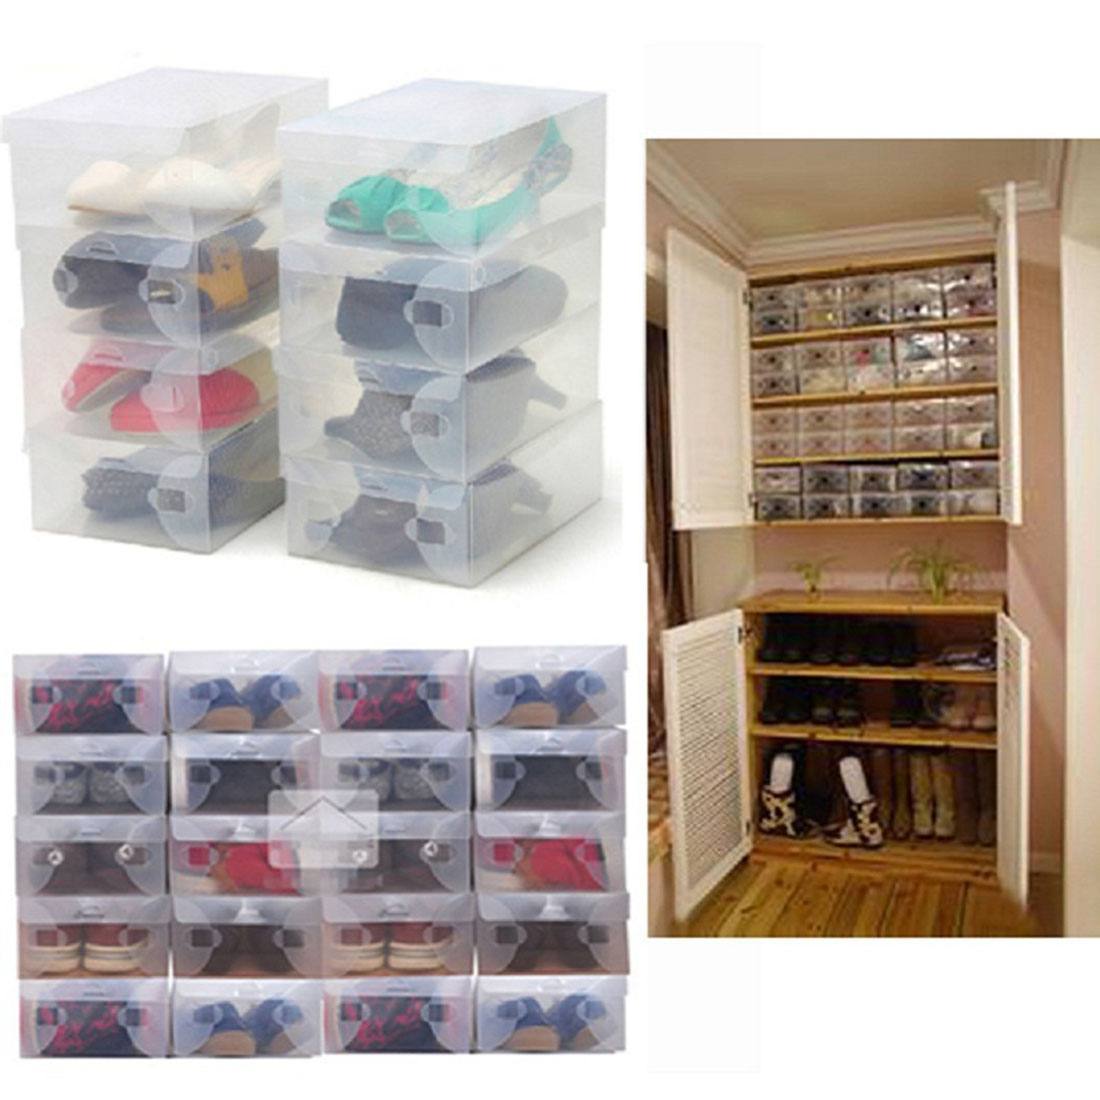 10pcs Transparent Clear Plastic Shoe Box Storage Shoe Boxes Foldable Shoes Case Holder Transparent Shoes Organizer  sc 1 st  AliExpress.com & Best Sale Wholesale 10Pcs Transparent Makeup Organizer Clear Plastic ...